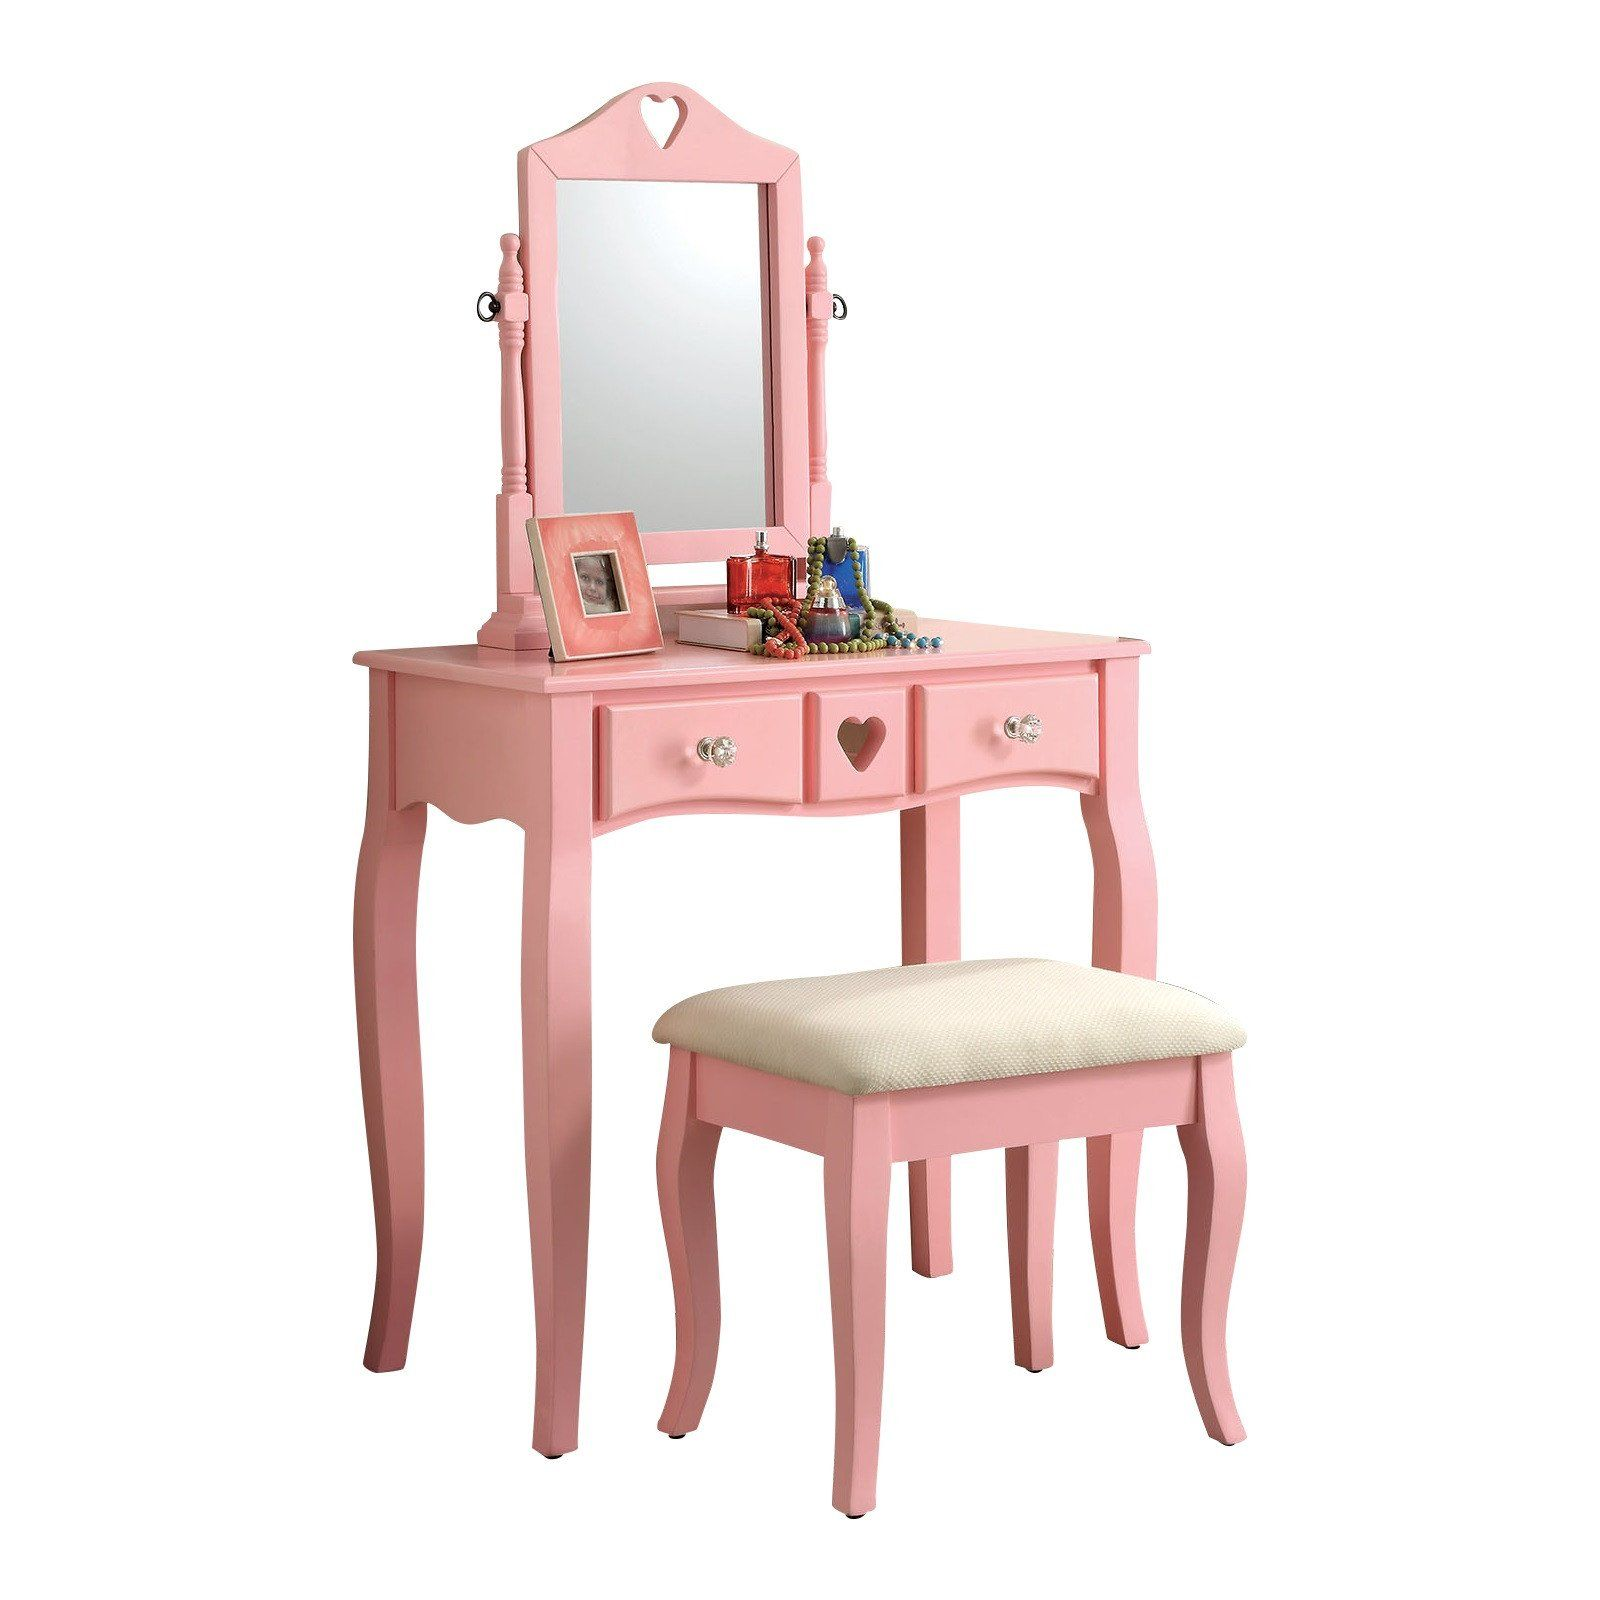 Furniture of america pink francine vanity with stool cmdkpk